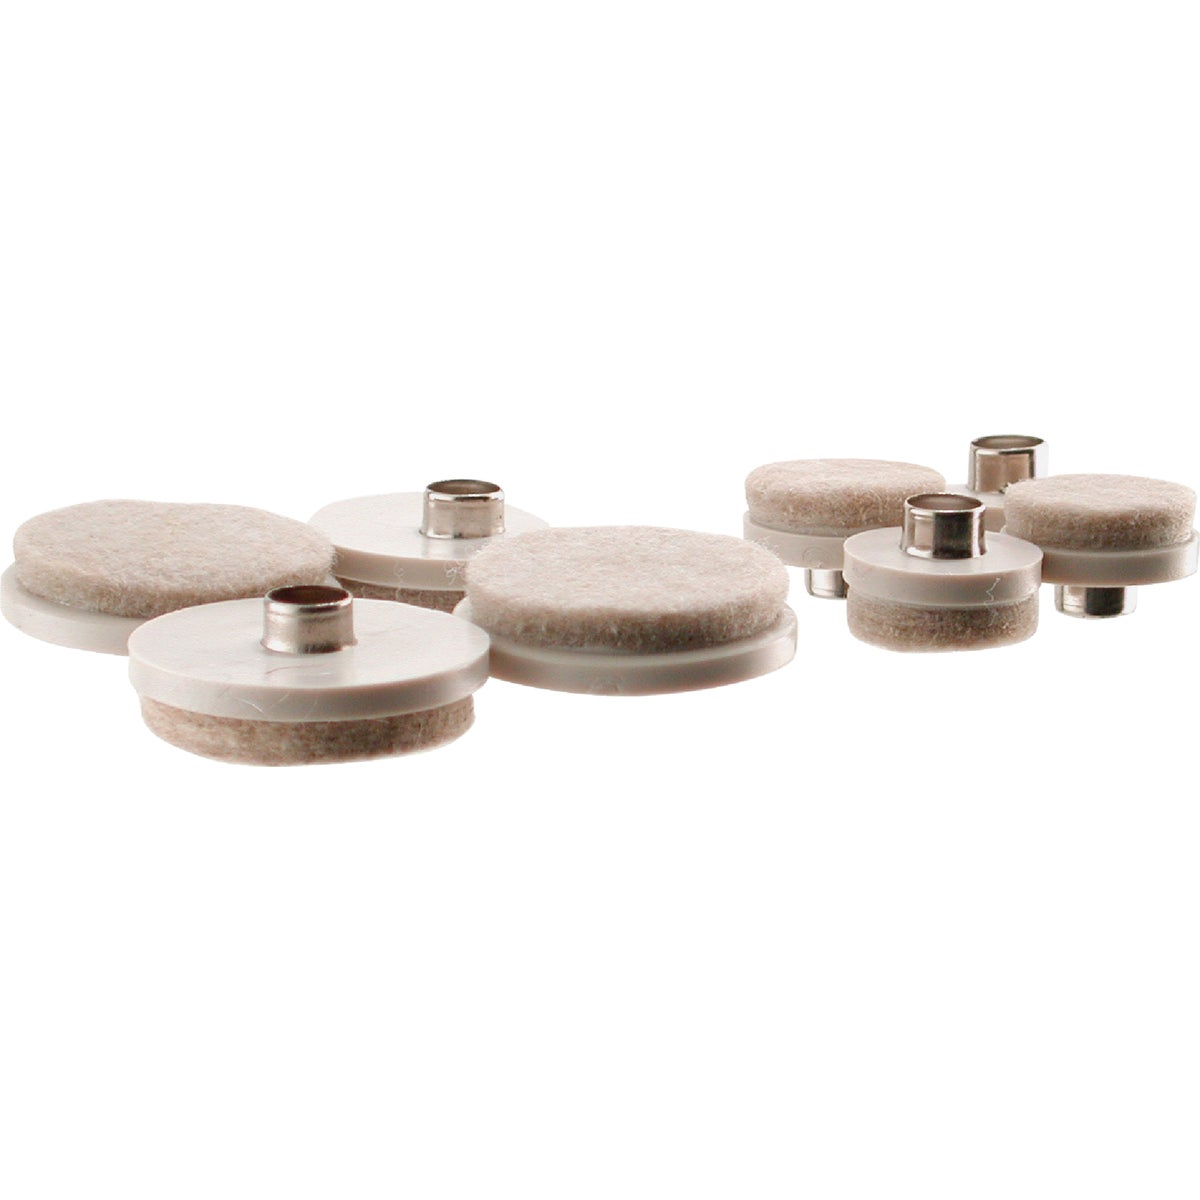 20PC ALMD FELT SET GLIDE - 238139 by Shepherd Hardware